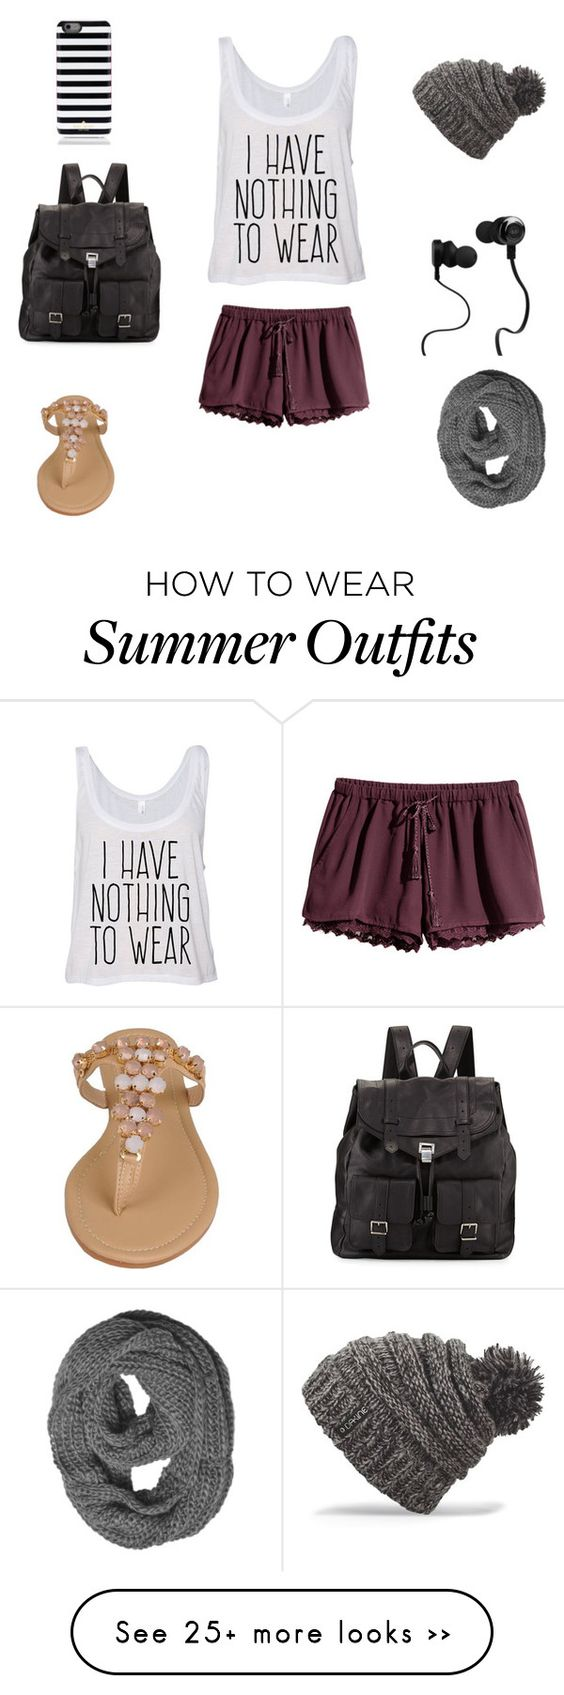 """""""......."""" by naomi2018 on Polyvore featuring H&M, Black Rivet, Proenza Schouler, Kate Spade, Monster and Dakine"""